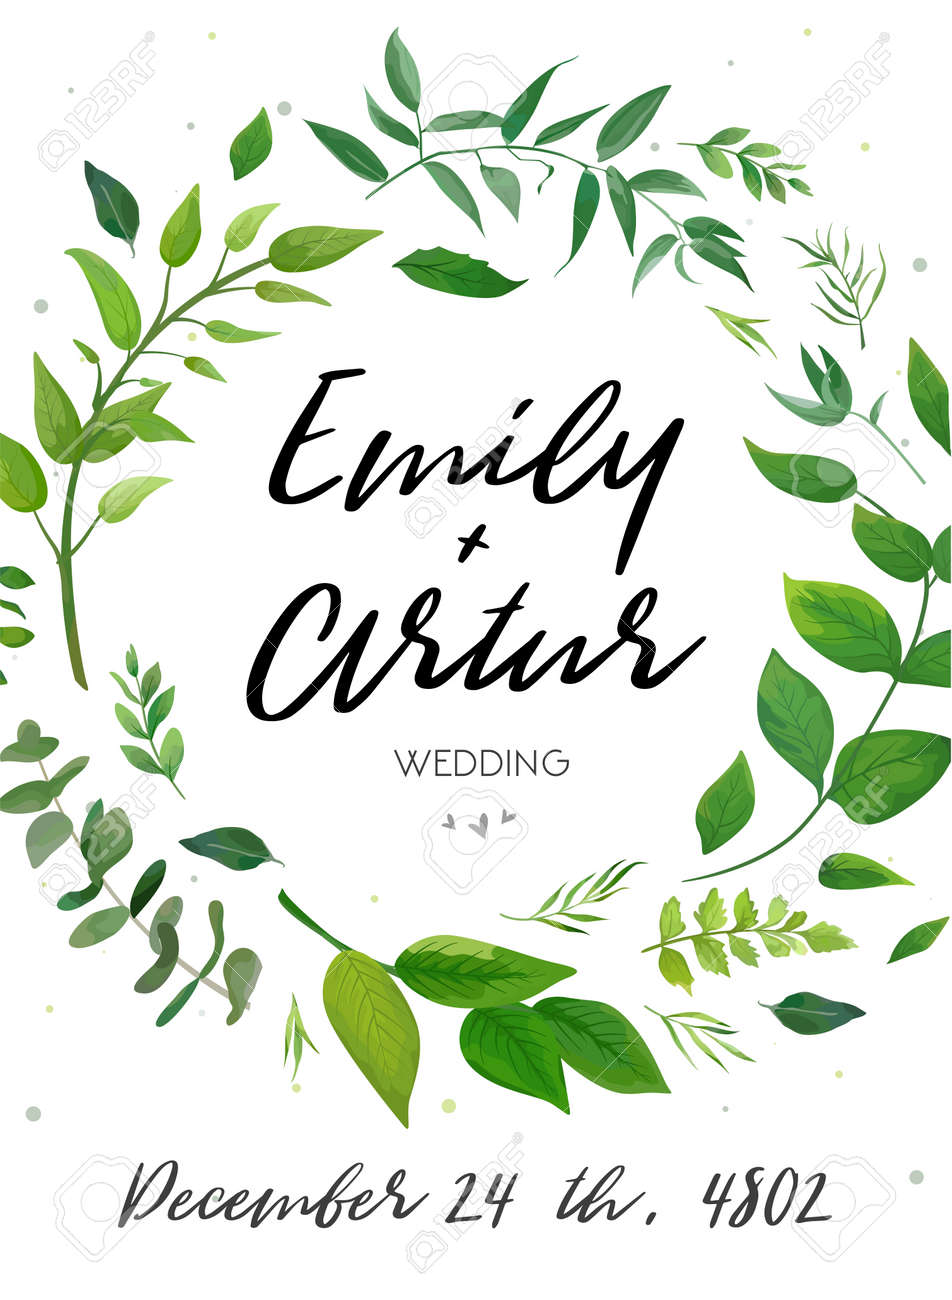 Elegant Wedding Invitation Template With Green Leaves Wreath